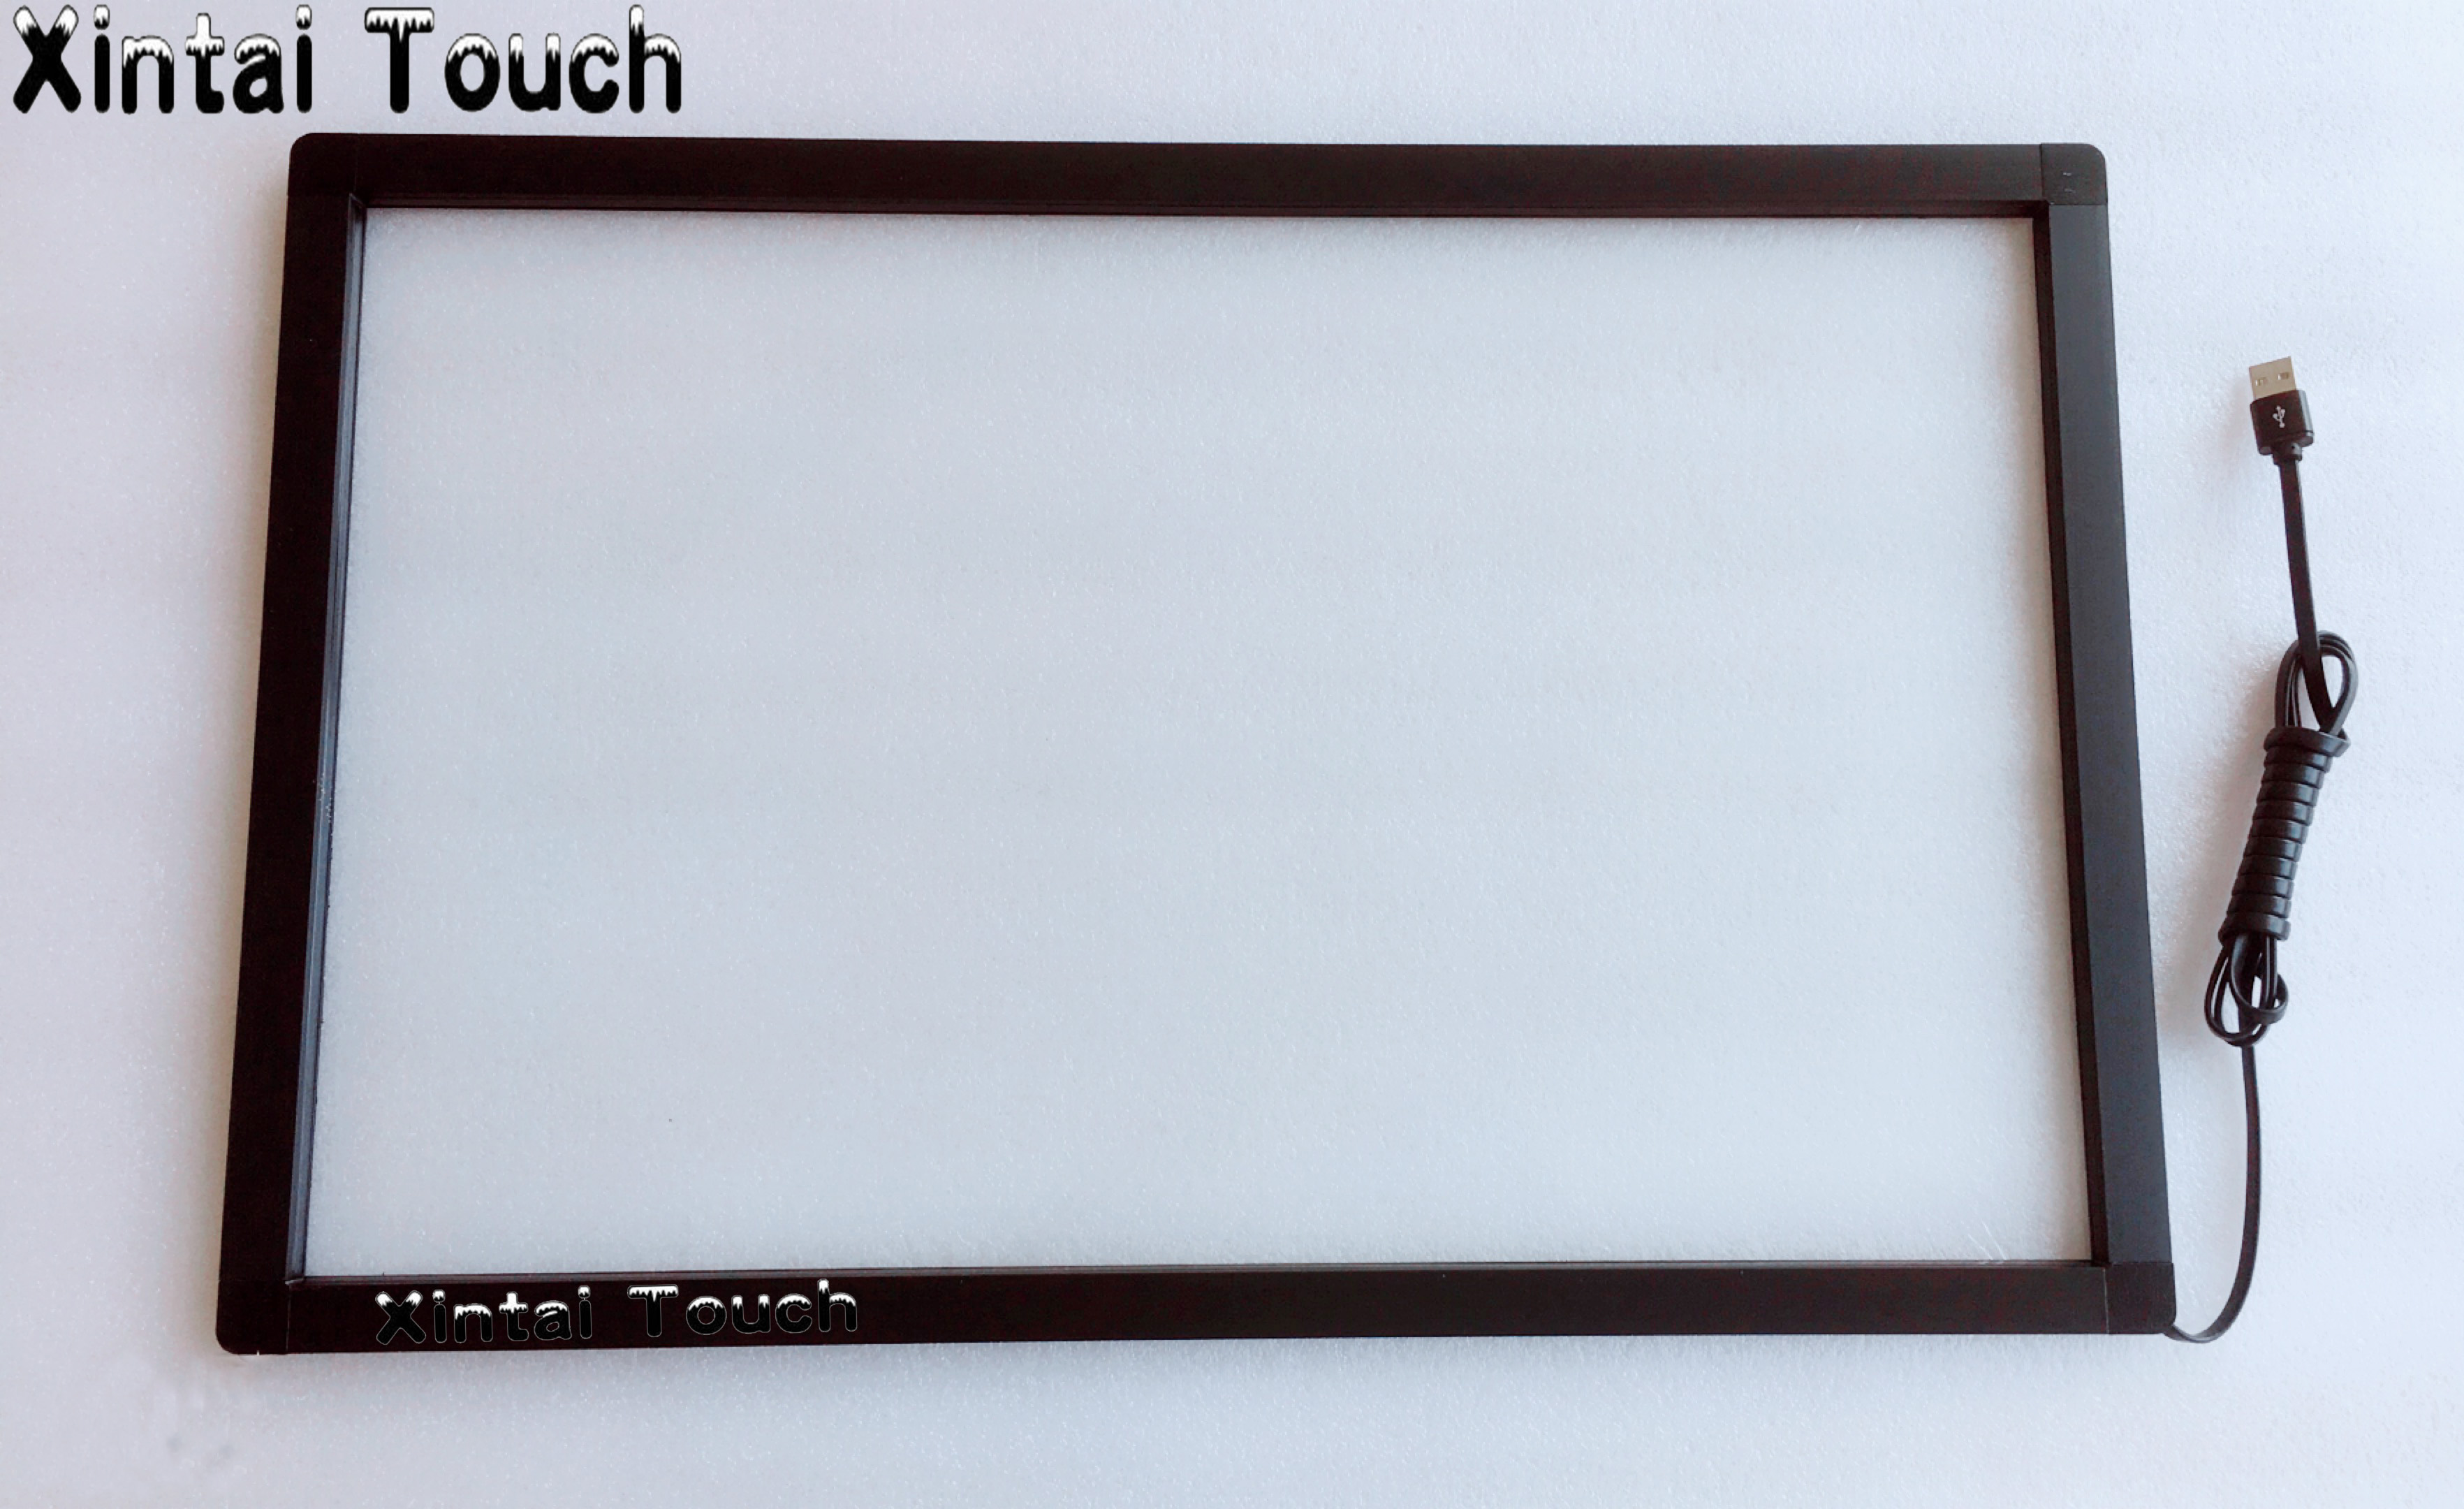 Xintai Touch 17 Inch Infrared 2 Points IR Touch Screen Overlay Kit For Lcd Touch Screen Monitor